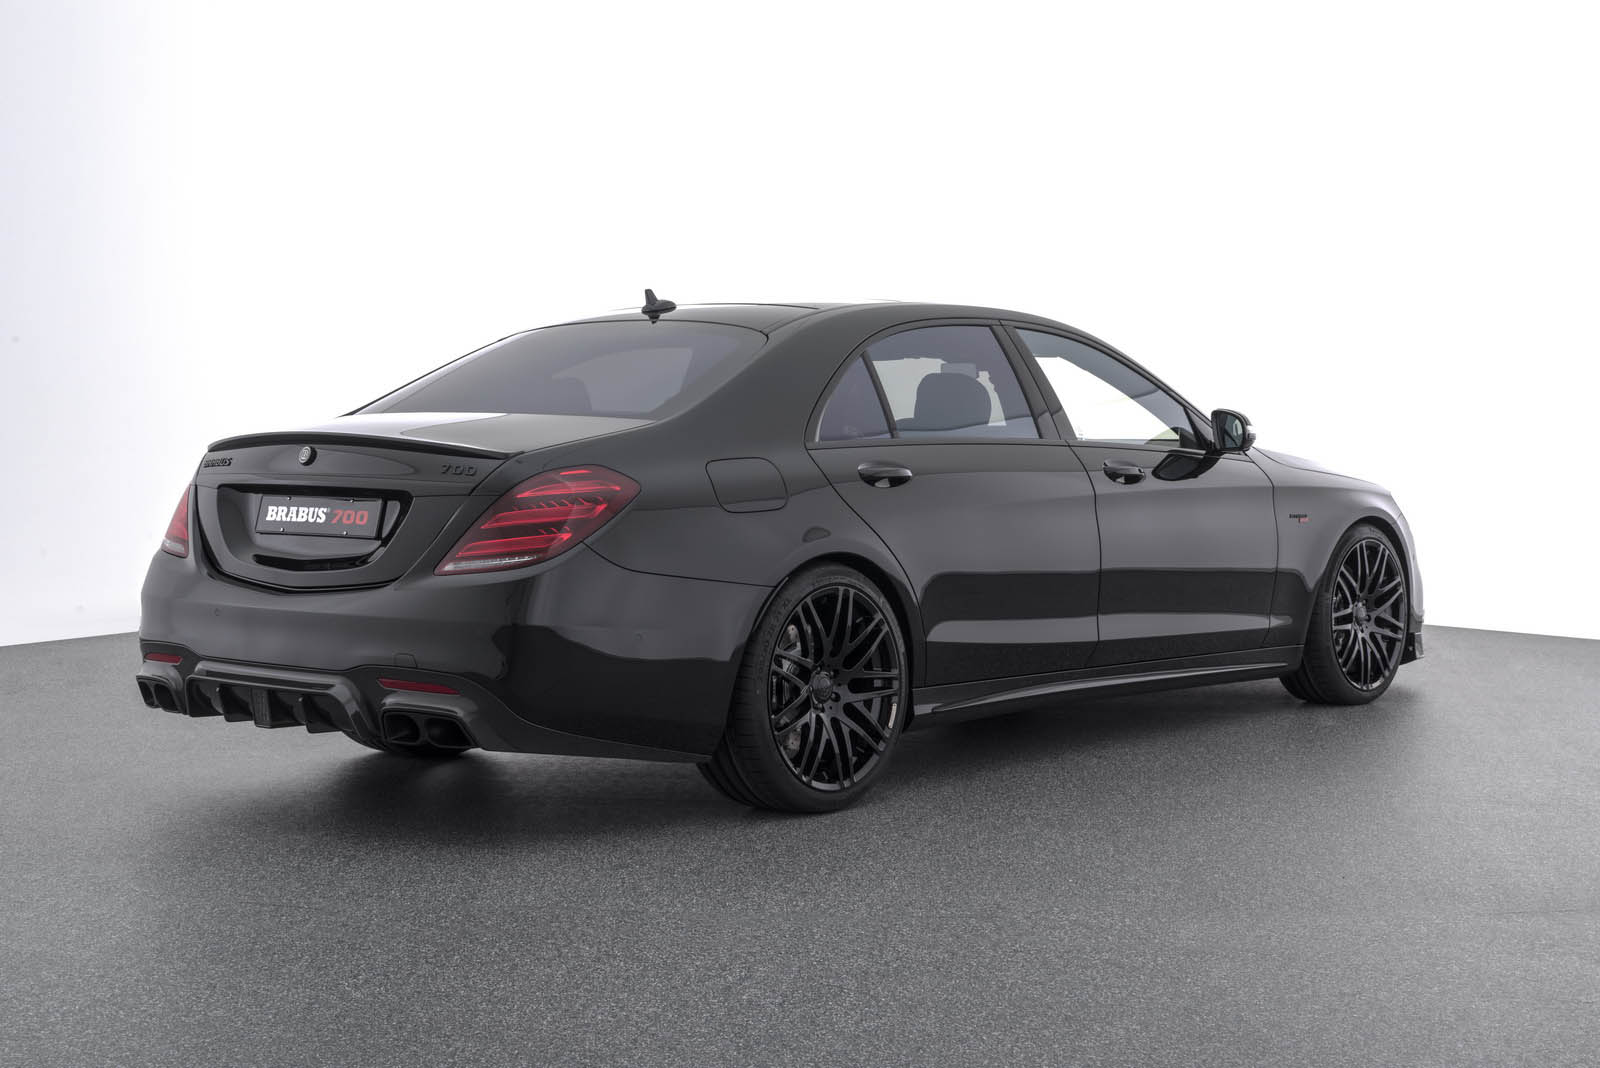 S63 Amg Sedan 2017 >> Maybach S650 Not Enough? Check Out The New Brabus 900 | Carscoops